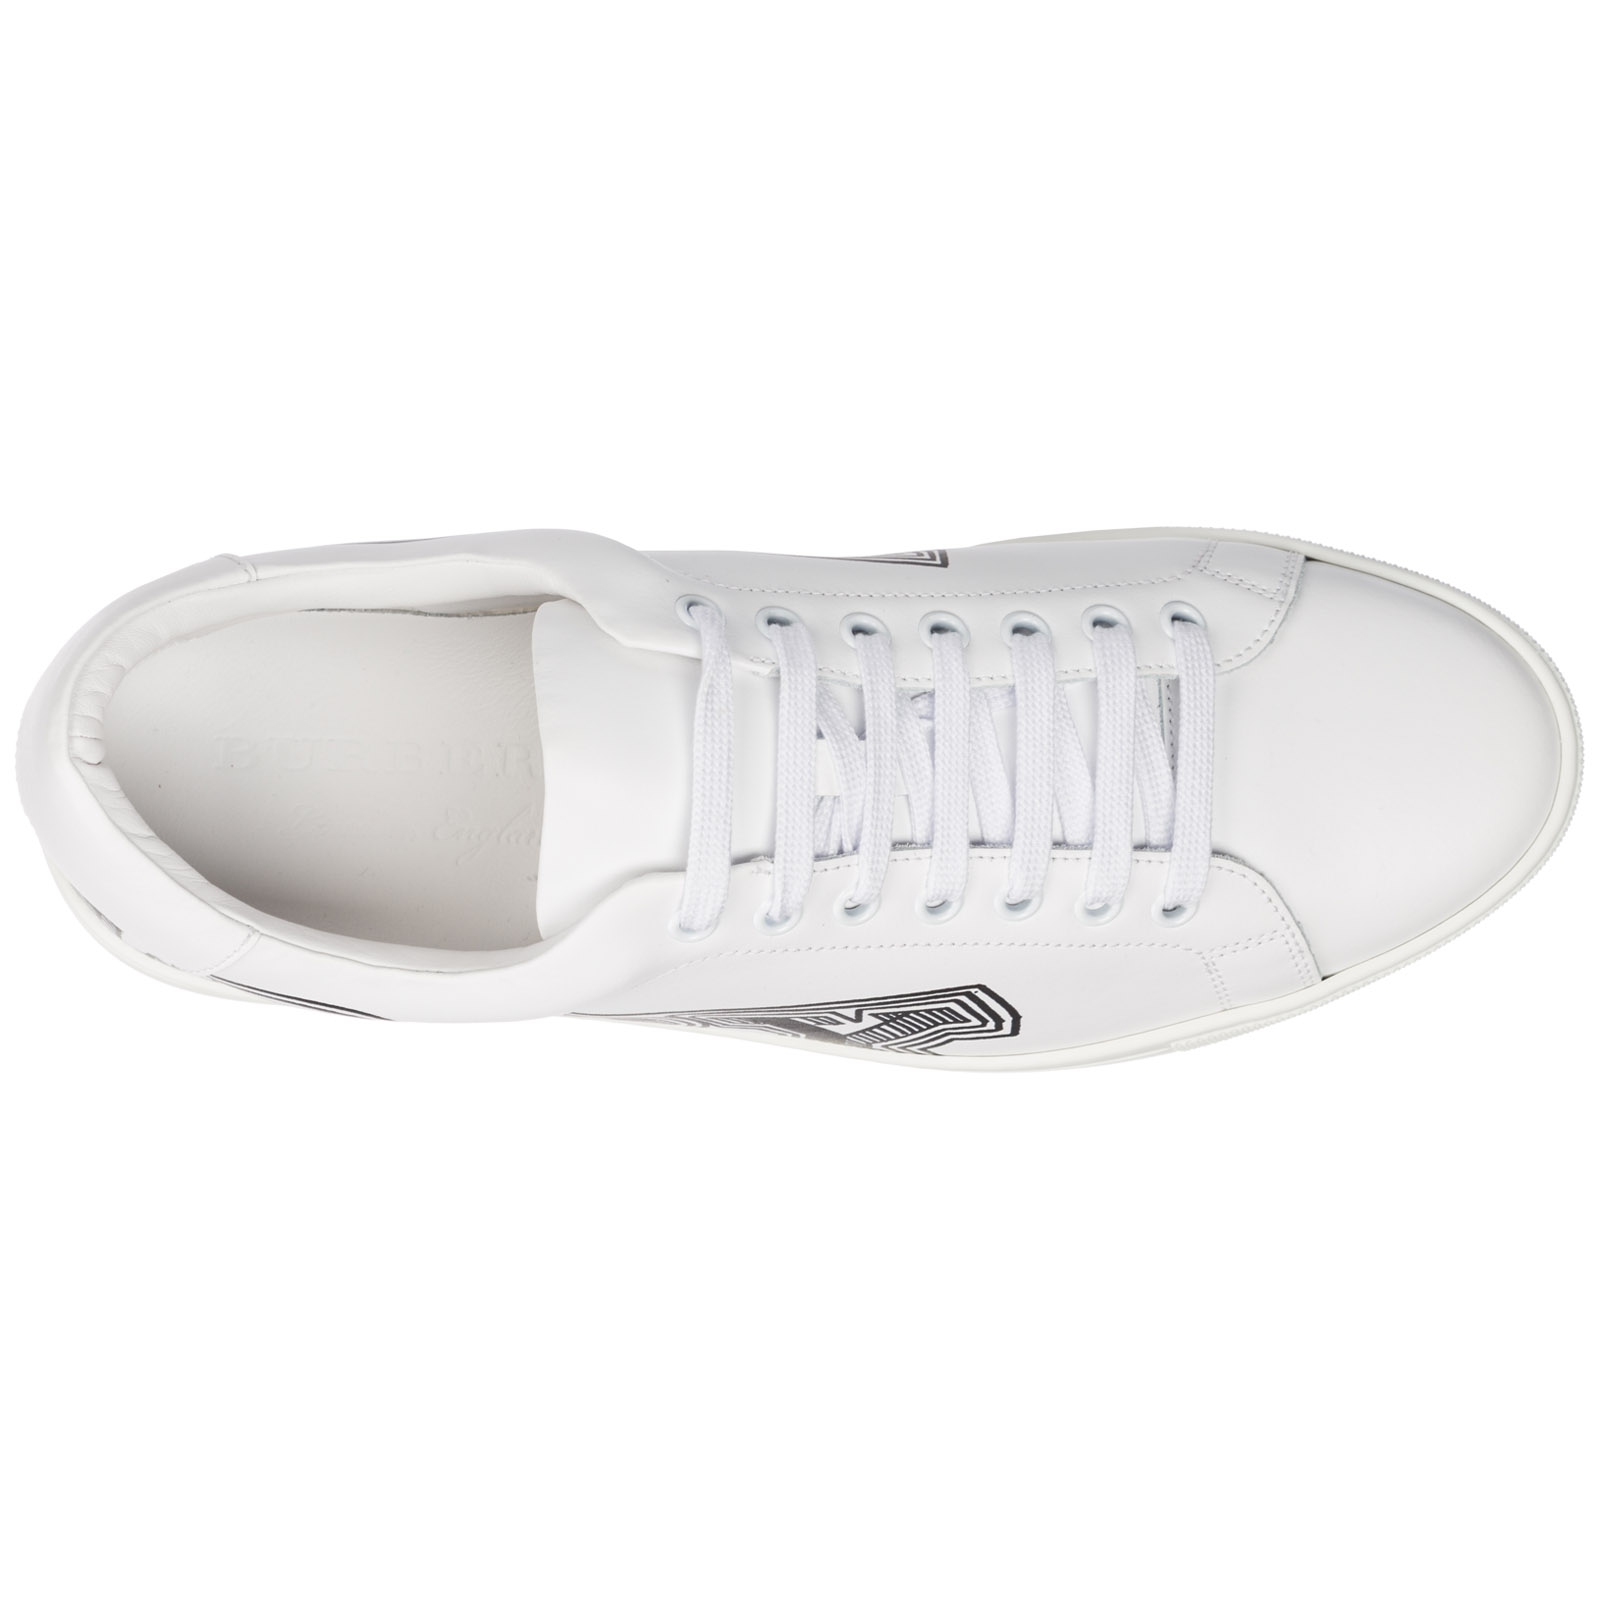 Men's shoes leather trainers sneakers albert